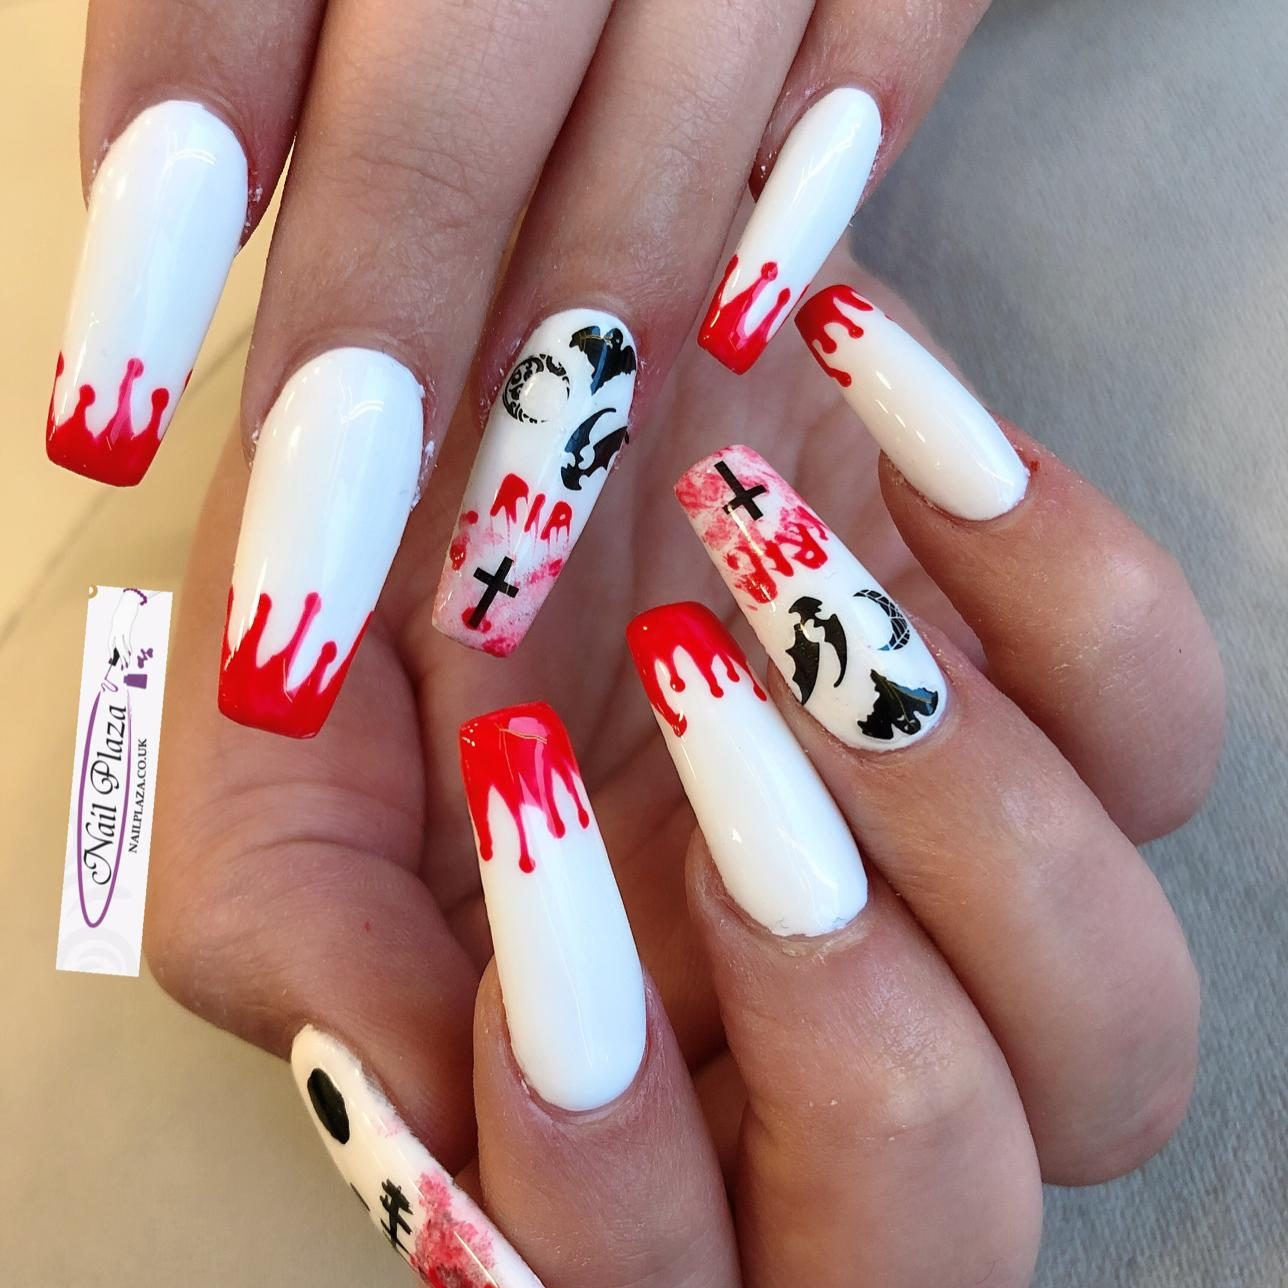 nail-plaza-twickenham-nail-design-061120-14